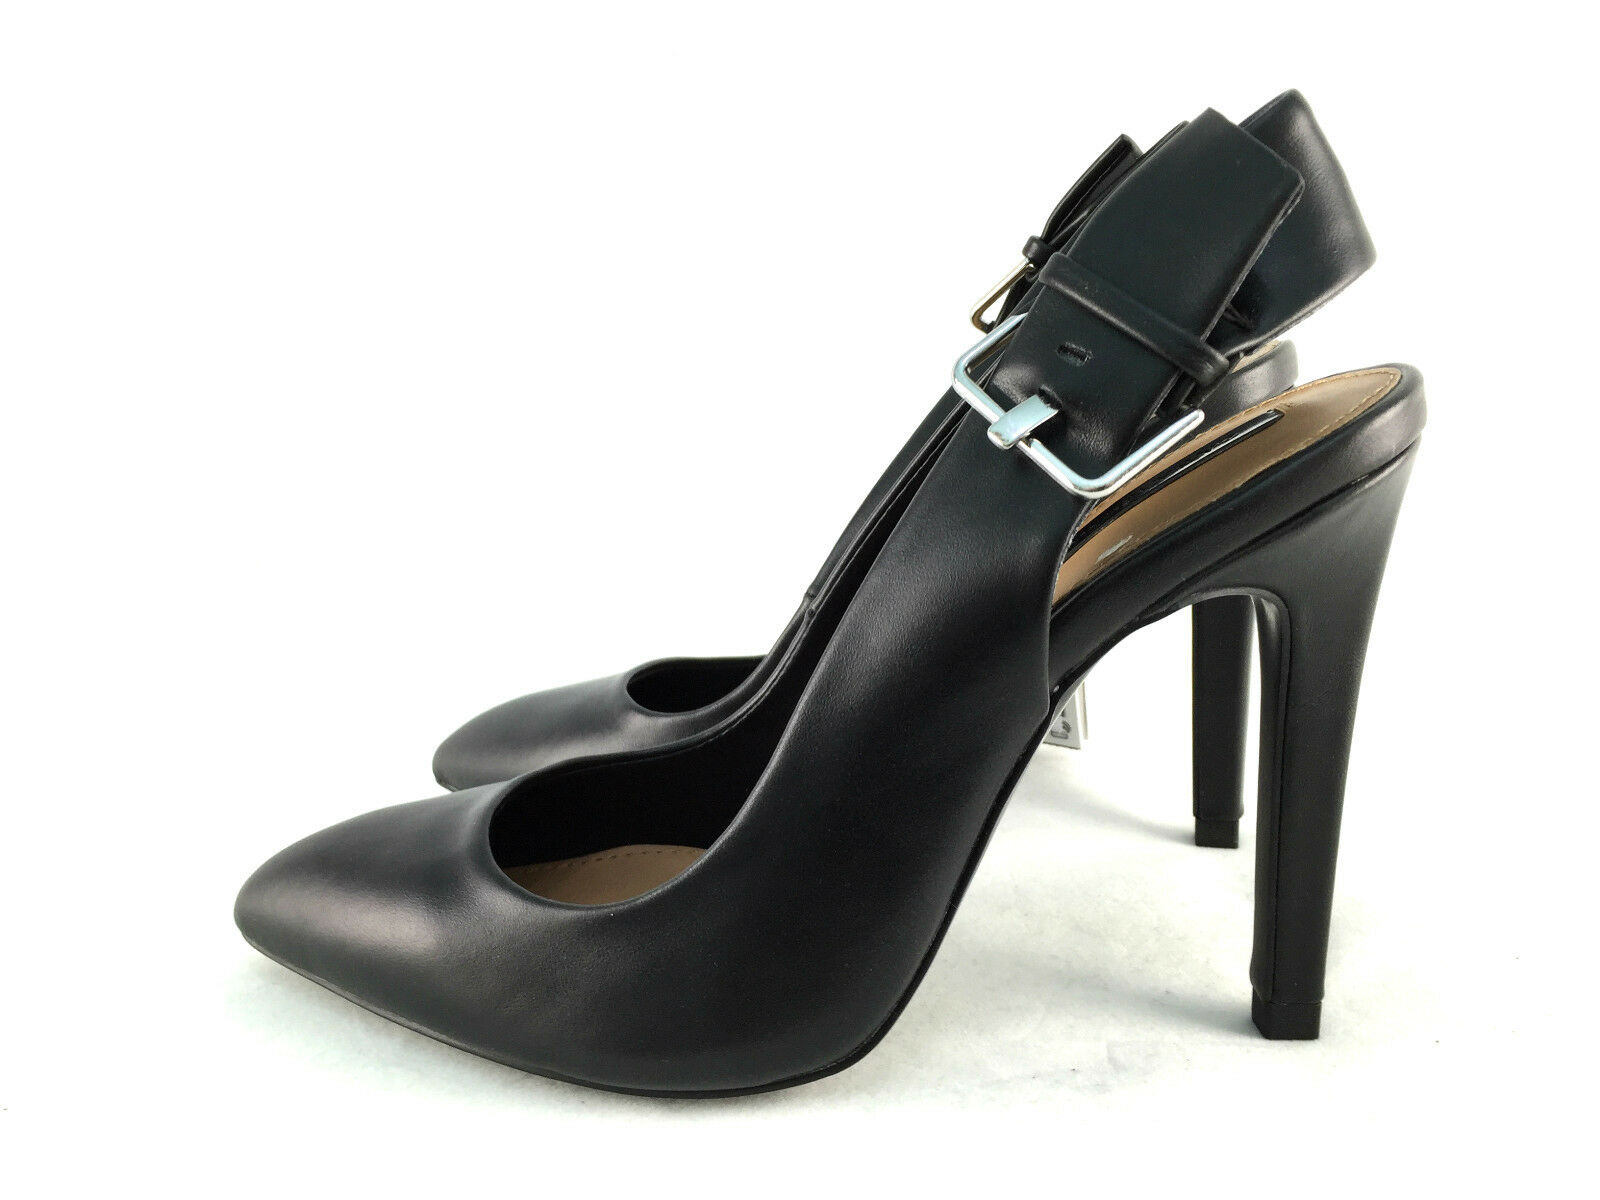 ZARA BLACK HIGH HEEL SLINGBACK Schuhe SIZE UK5/EUR38/US7.5